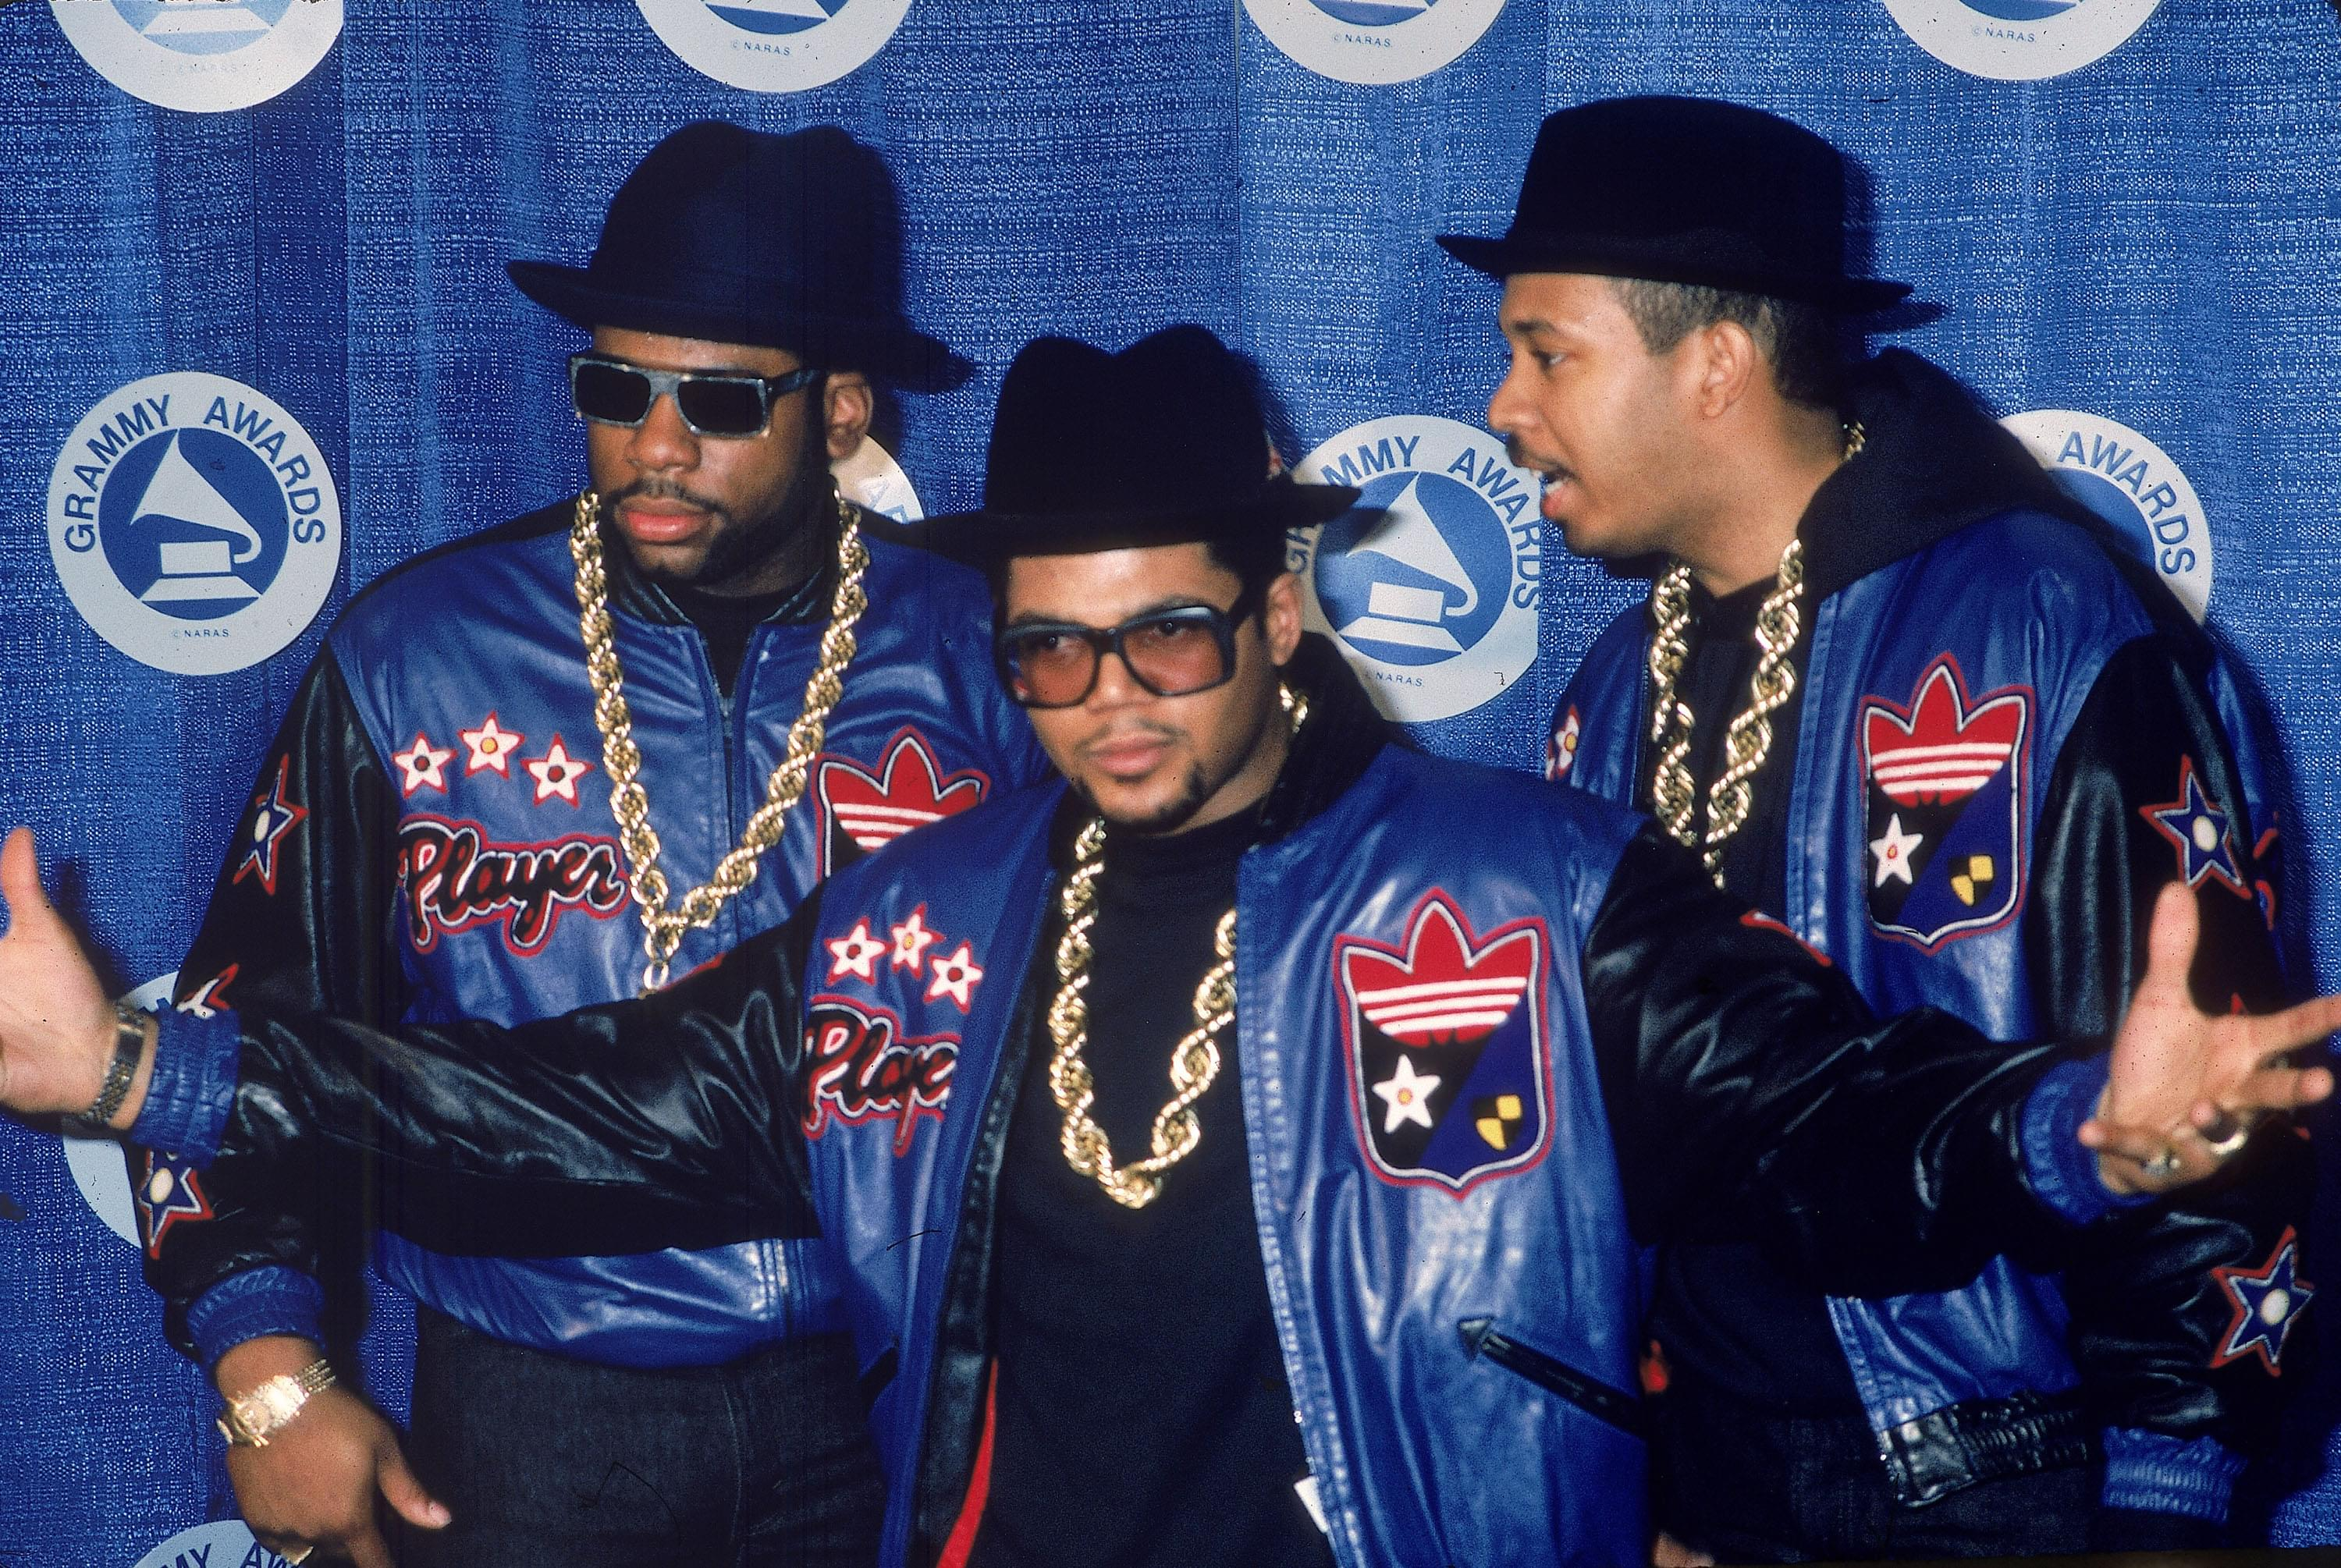 Netflix Announces New Crime Series Highlighting Jam Master Jay, Bob Marley & Other Mysteries